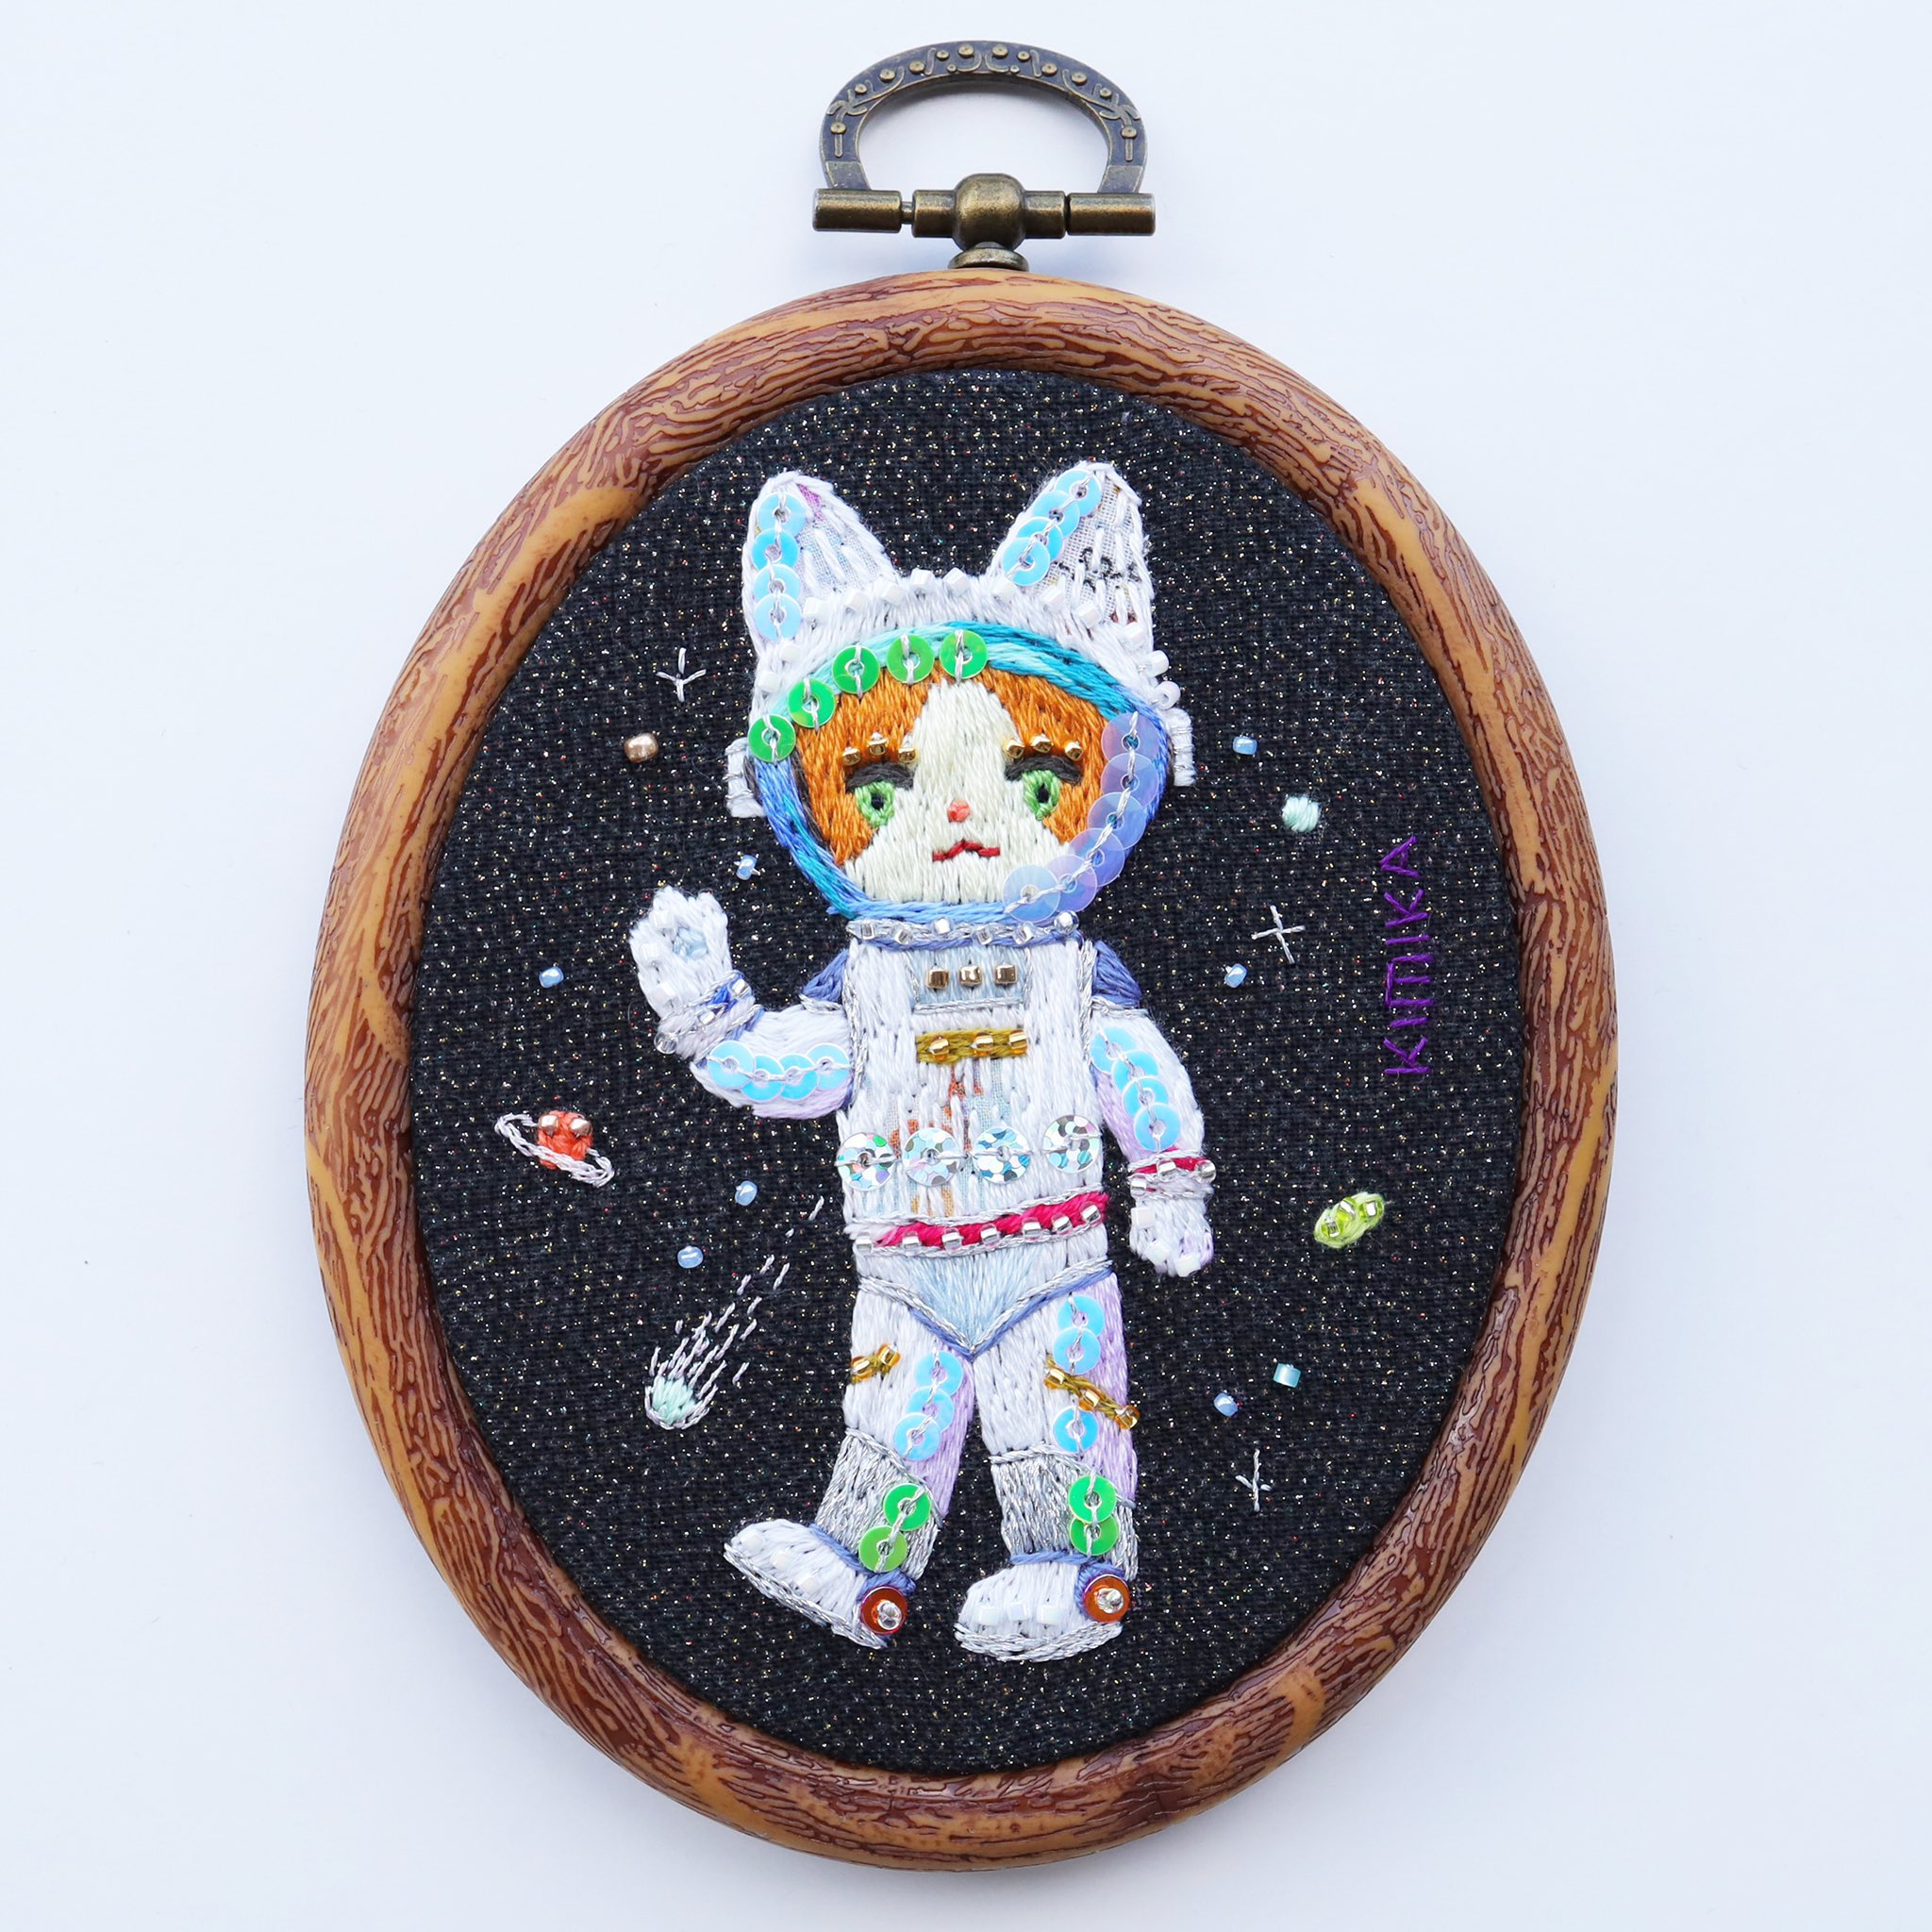 The cat who became an astronaut by Kimika Hara